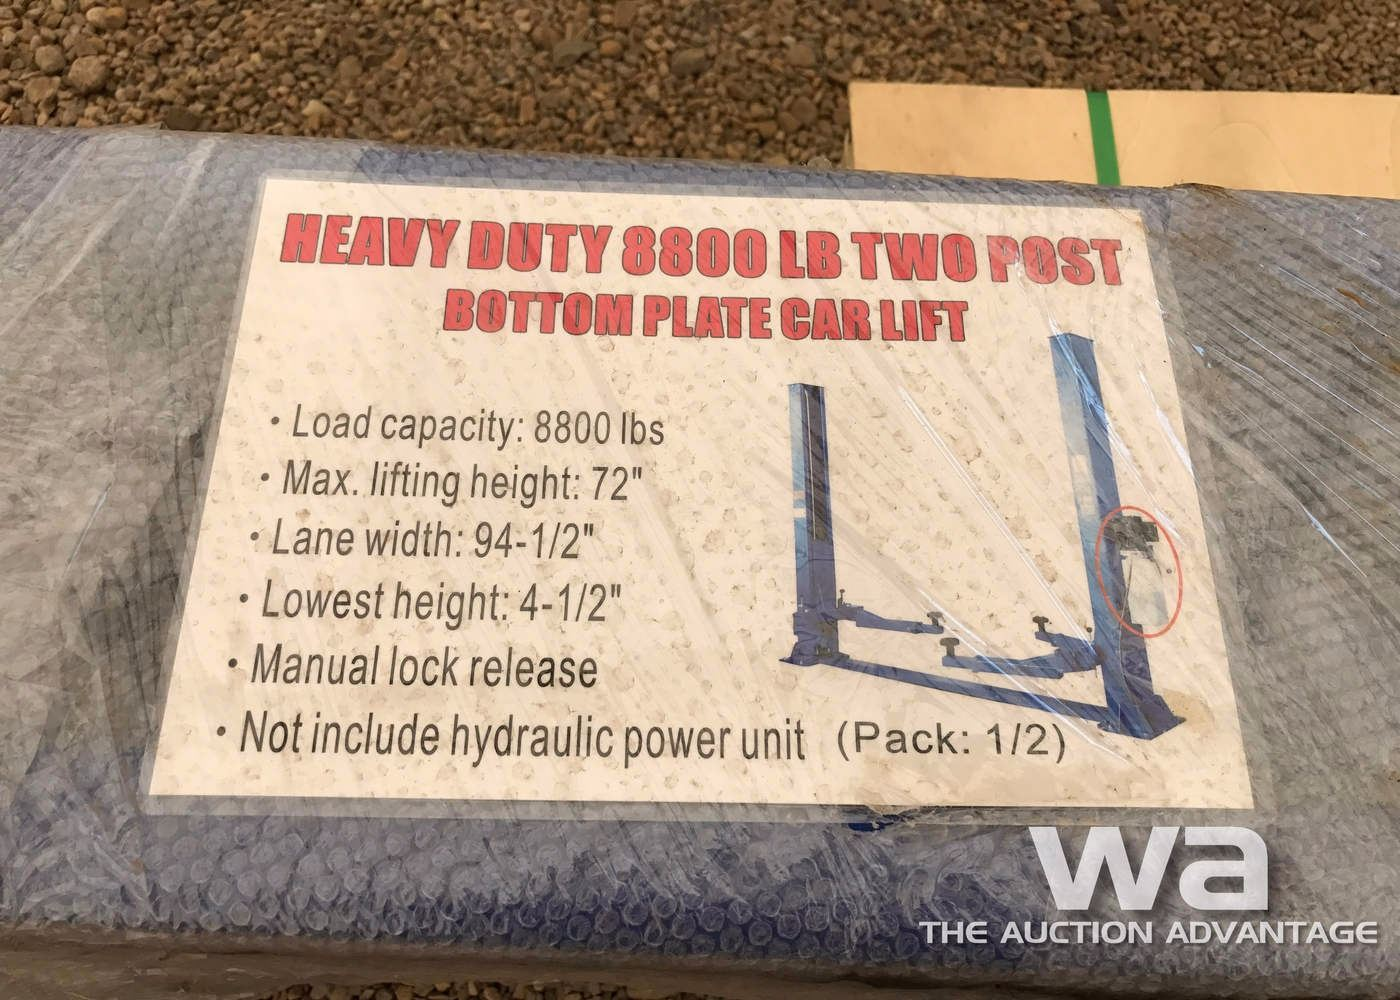 Two Post Car Lift Schematic 8800 Lb Heavy Duty Auto Image 2